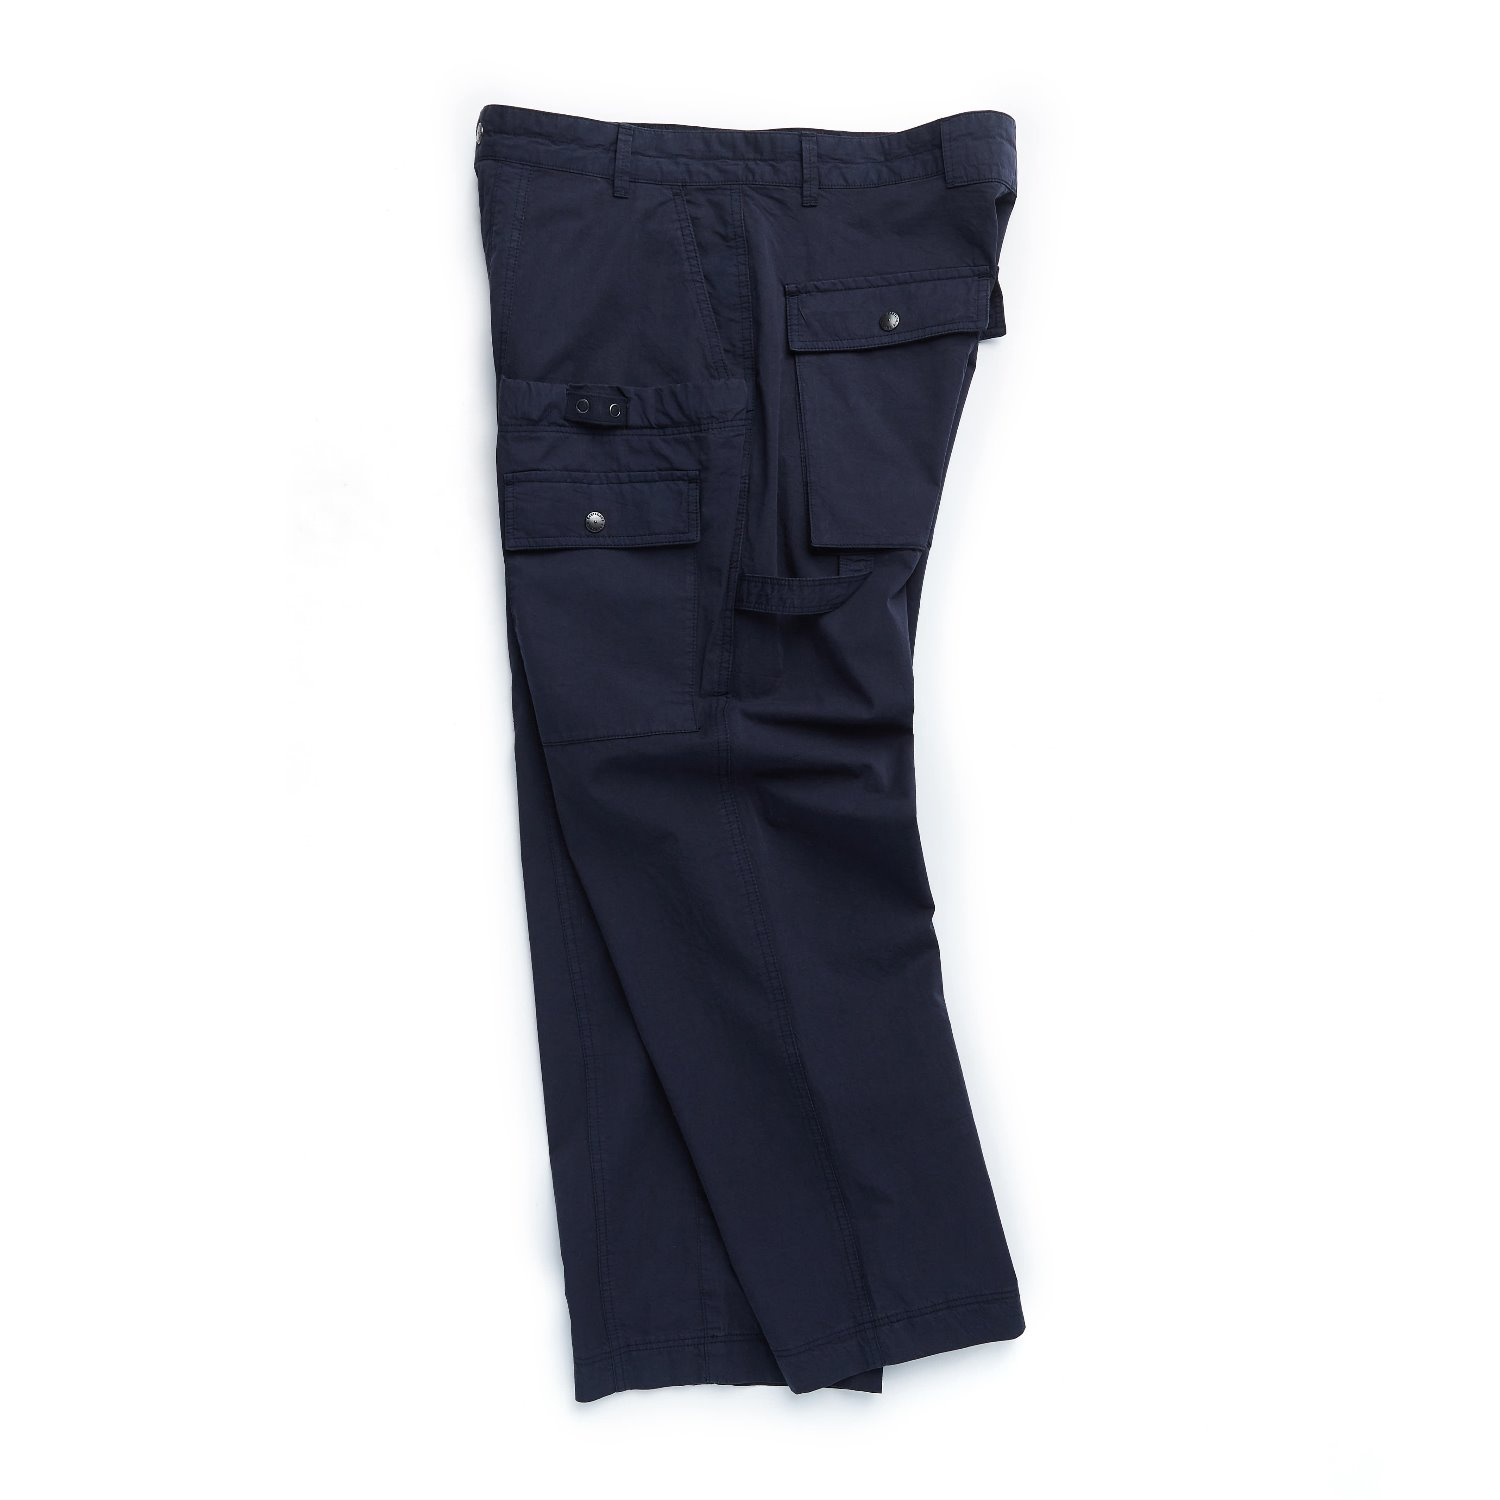 Wagon Pants (Dyed Navy)